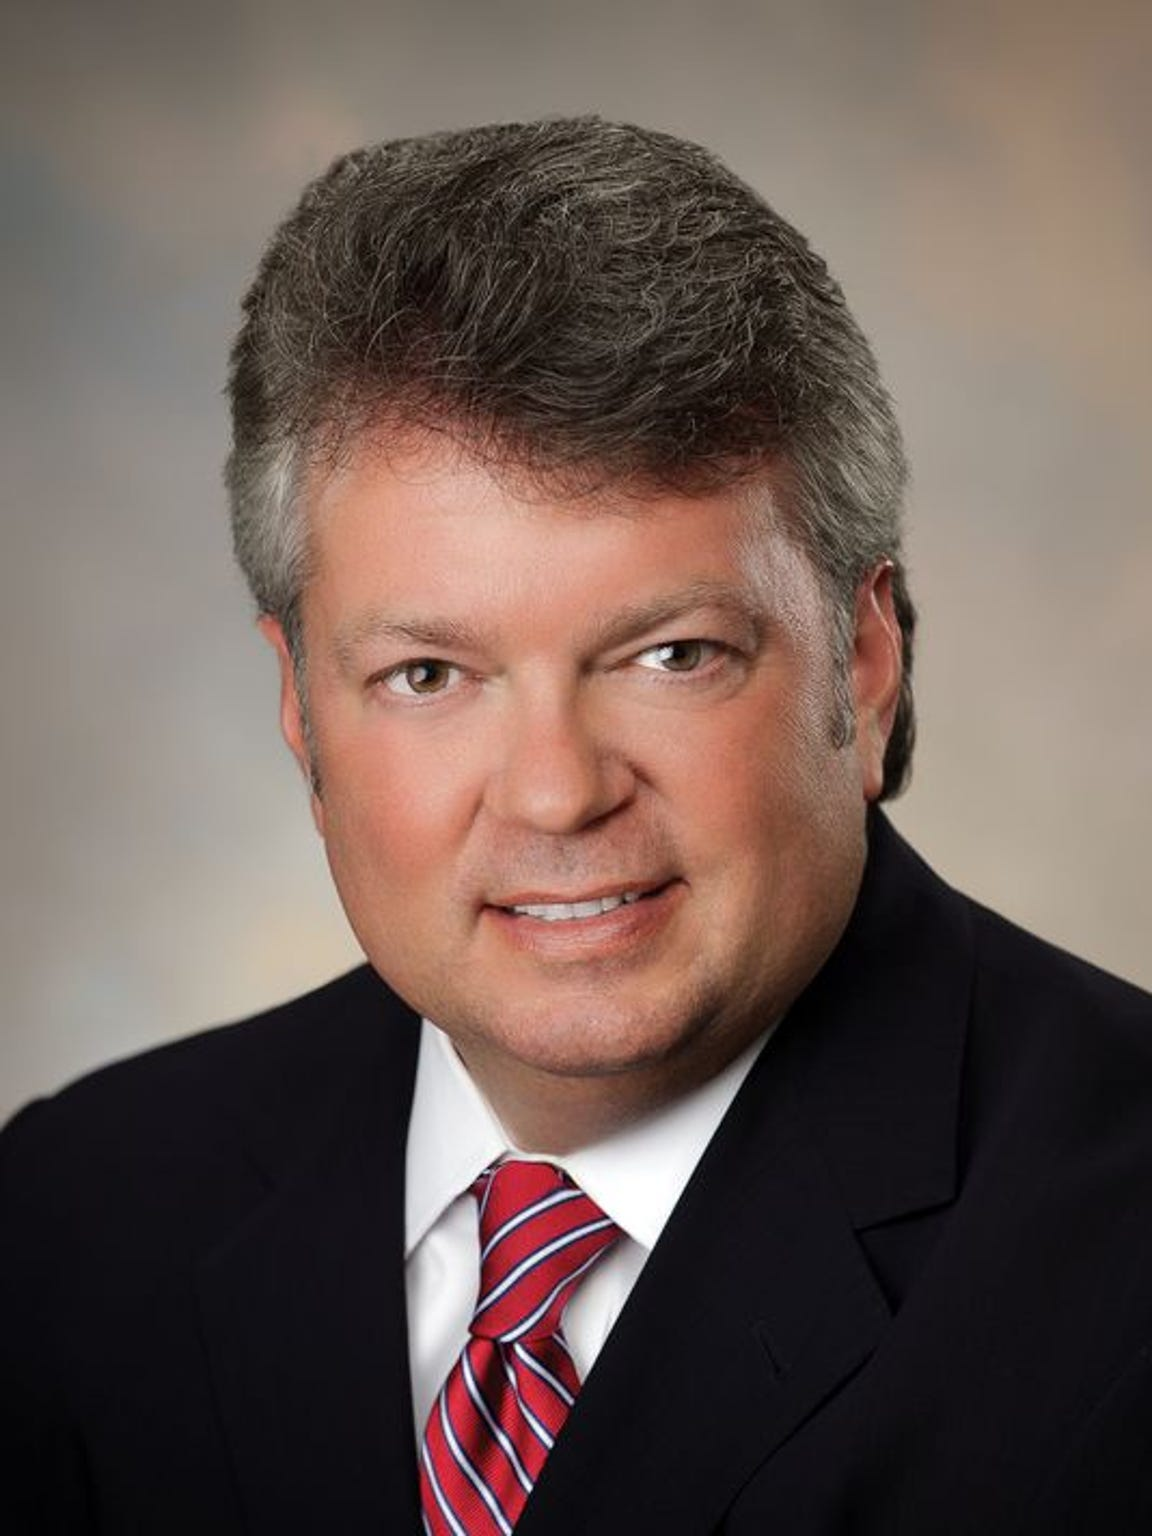 Jim Hood is running for re-election as attorney general.